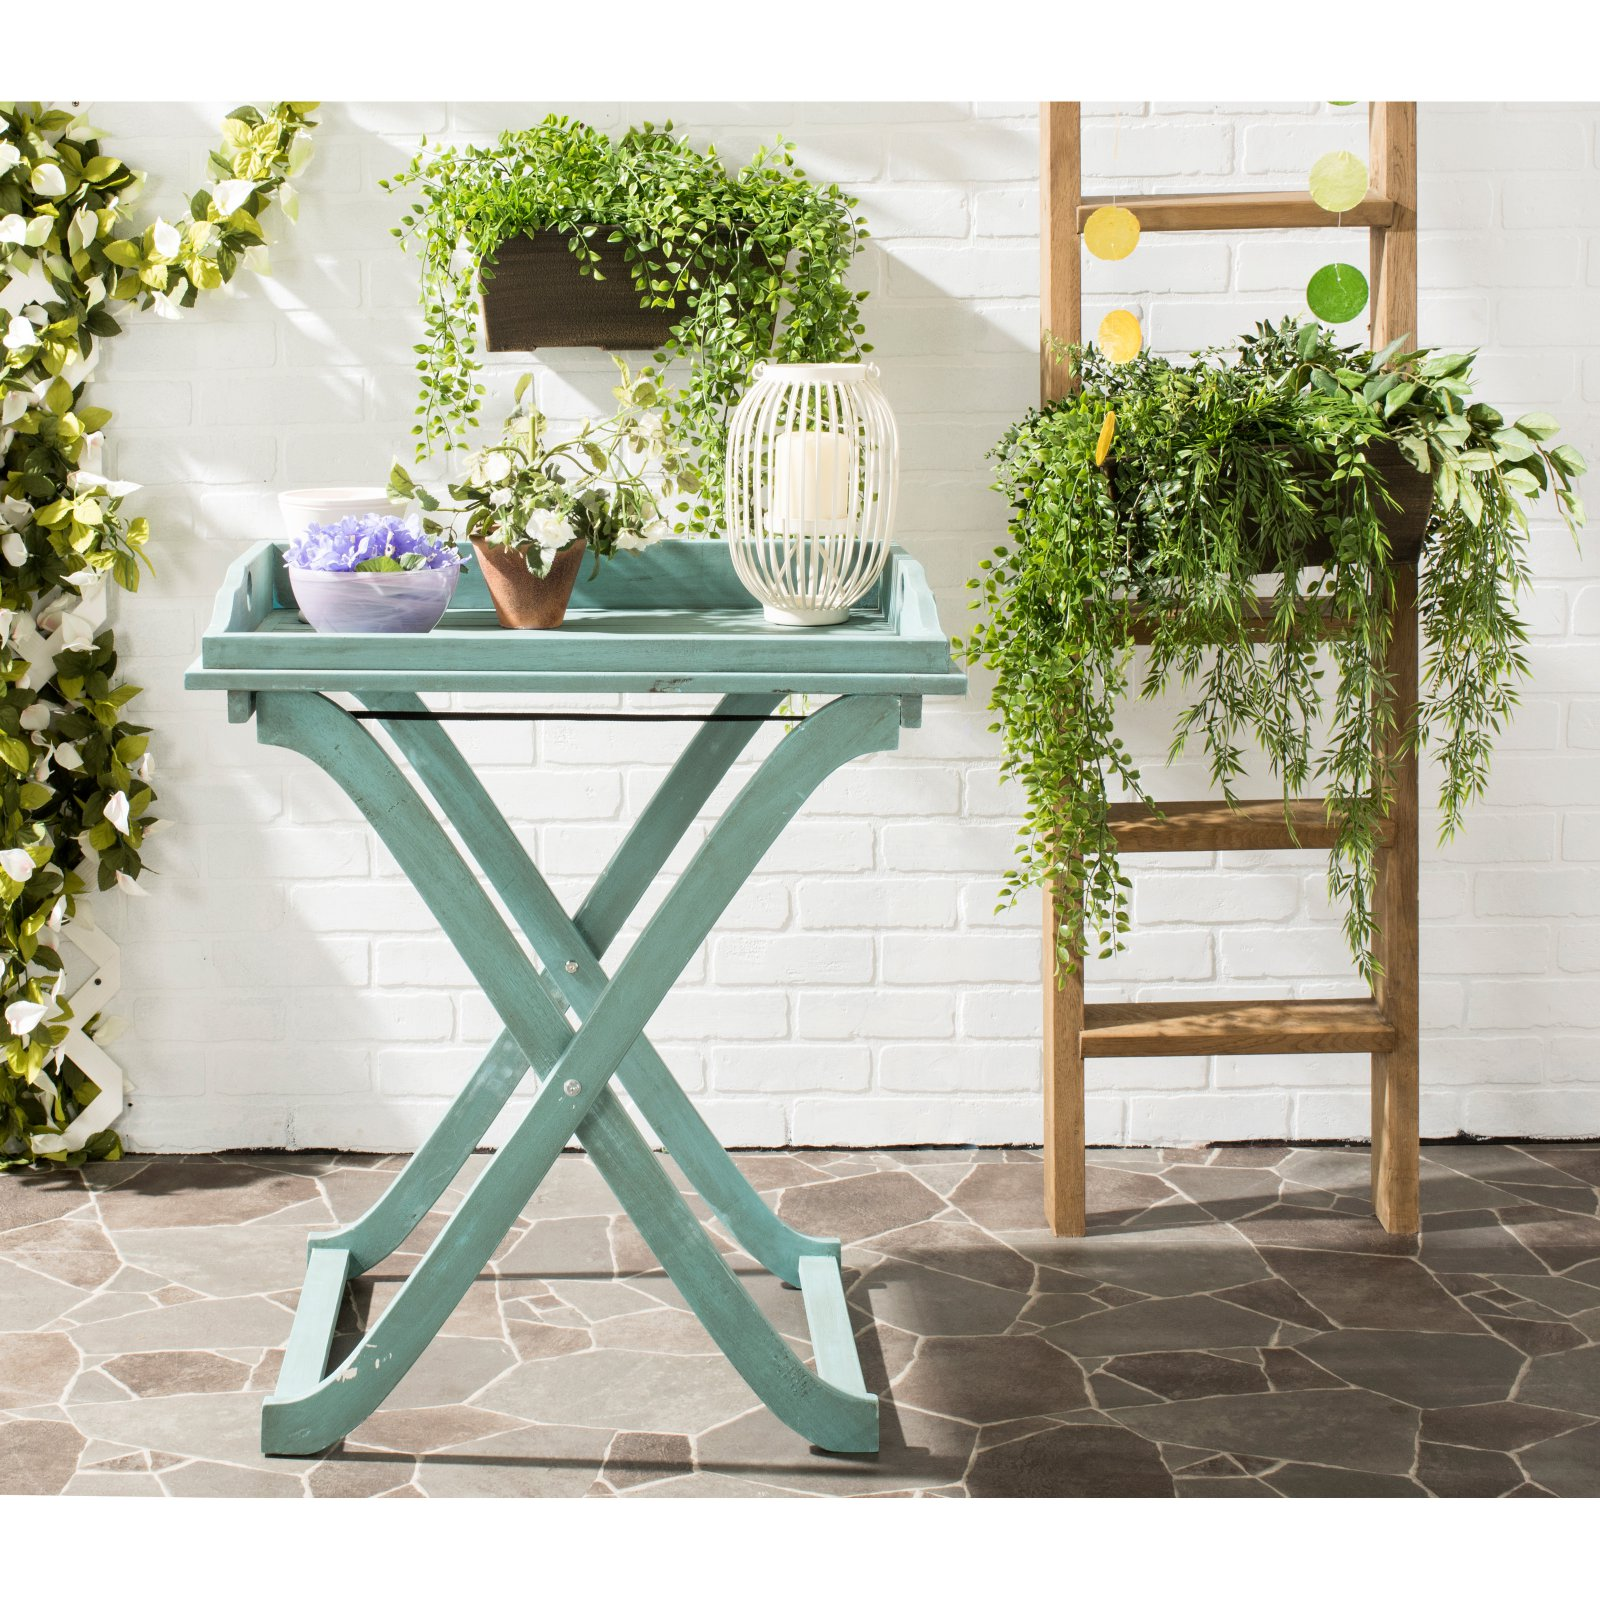 Safavieh Covina Tray Table, Multiple Colors